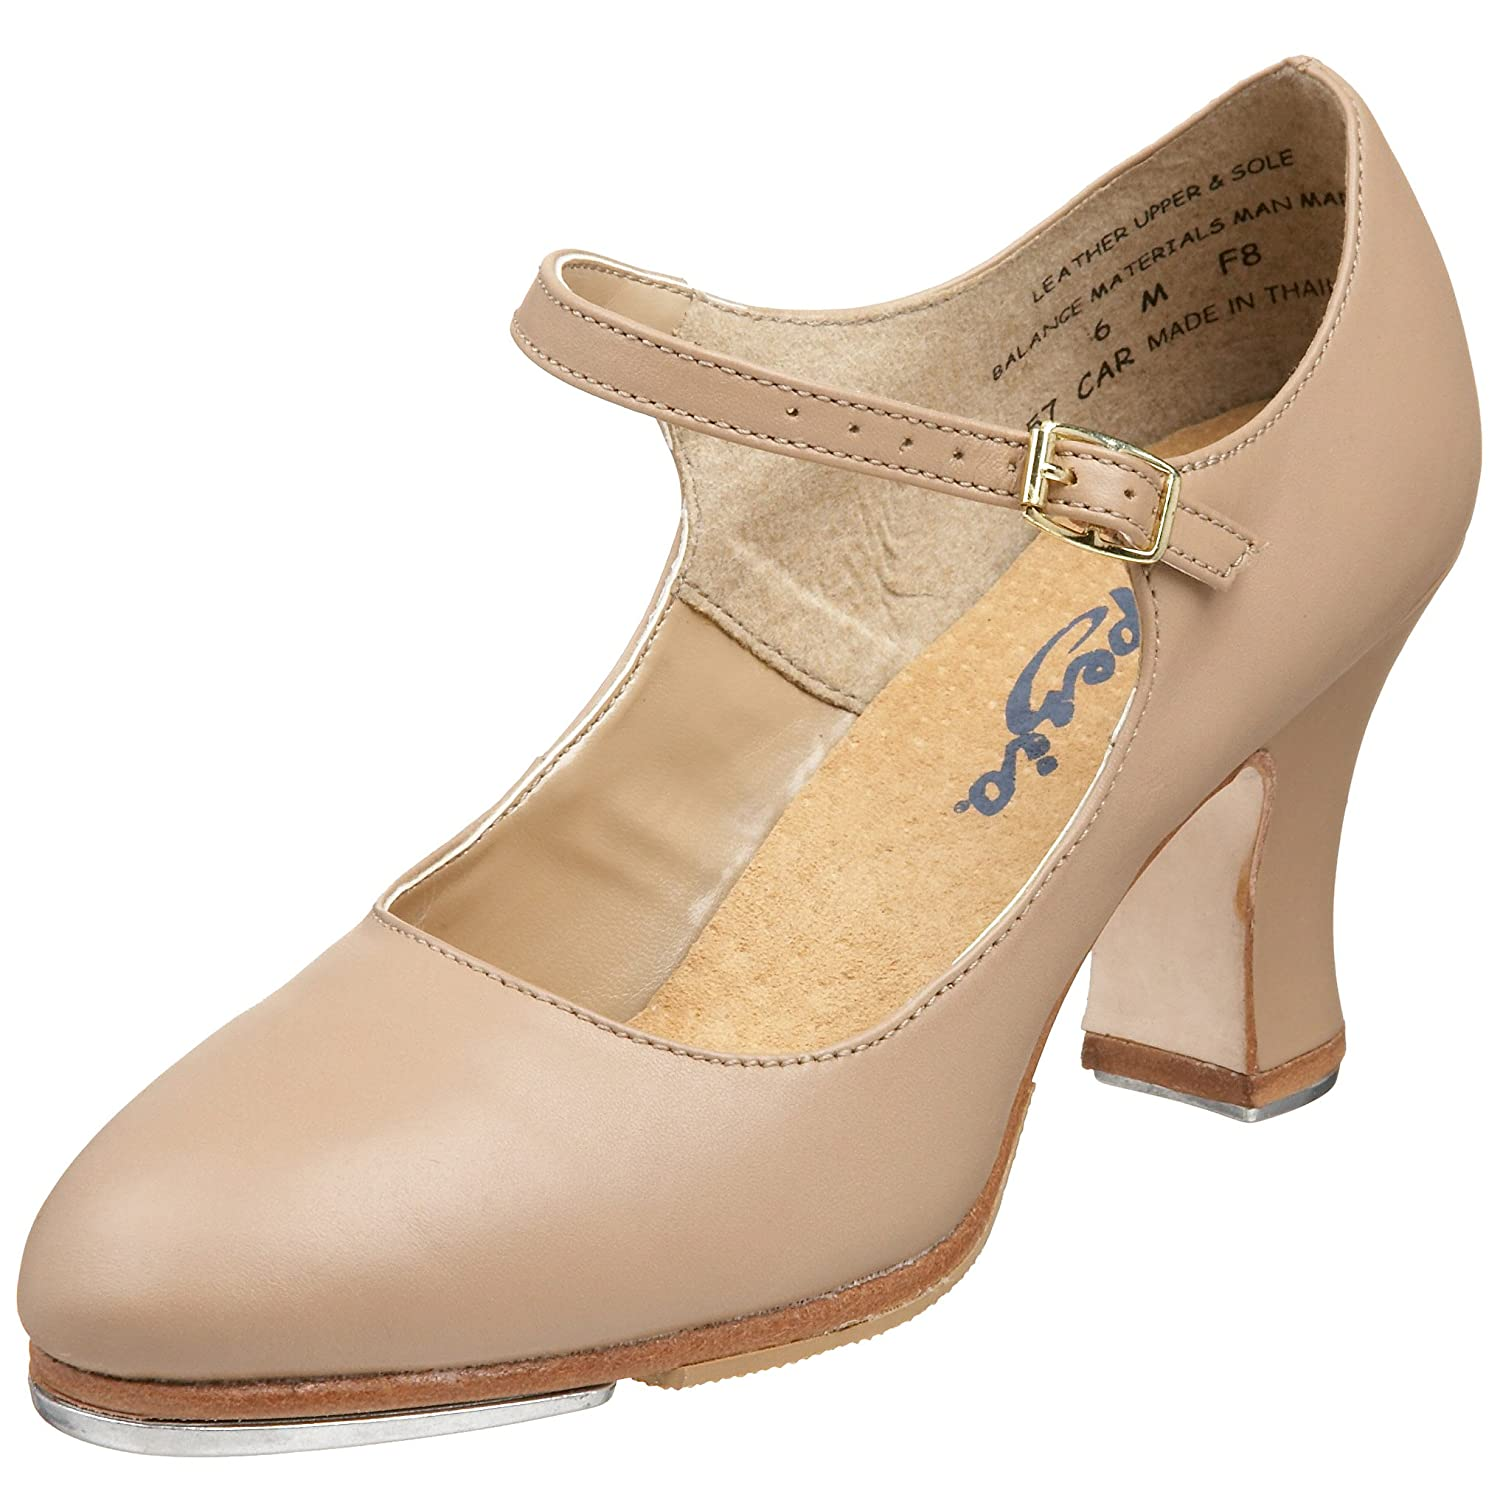 Retro Style Dance Shoes Capezio Womens 657 Manhattan Xtreme Tap Shoe $82.95 AT vintagedancer.com